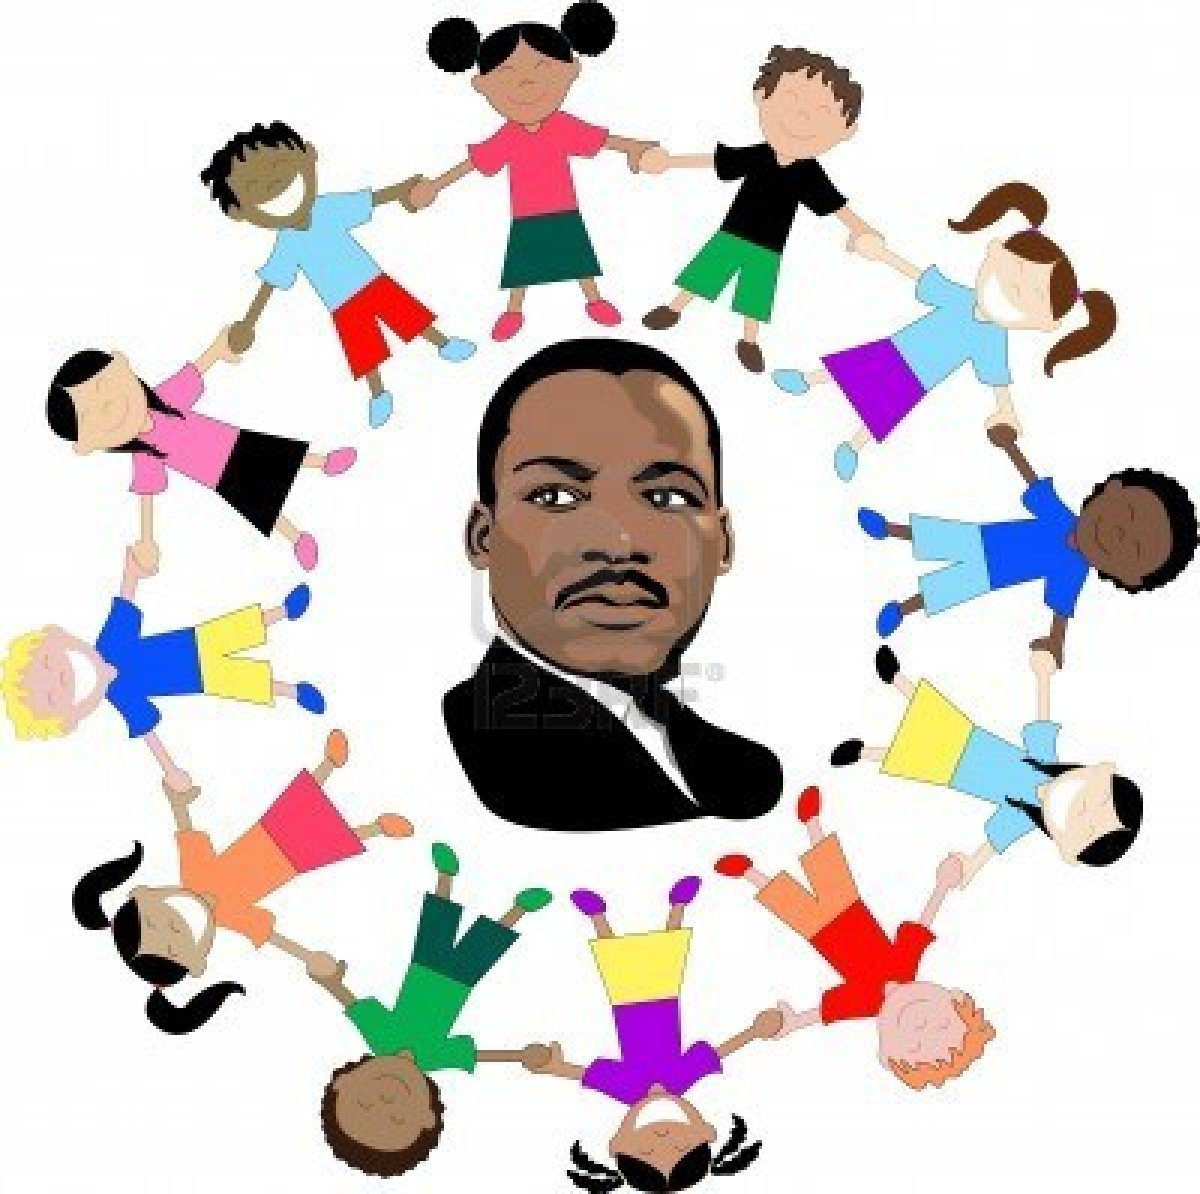 martin luther king jr day clipart clipart panda free clipart images rh clipartpanda com free martin luther king jr. clipart clipart martin luther king day